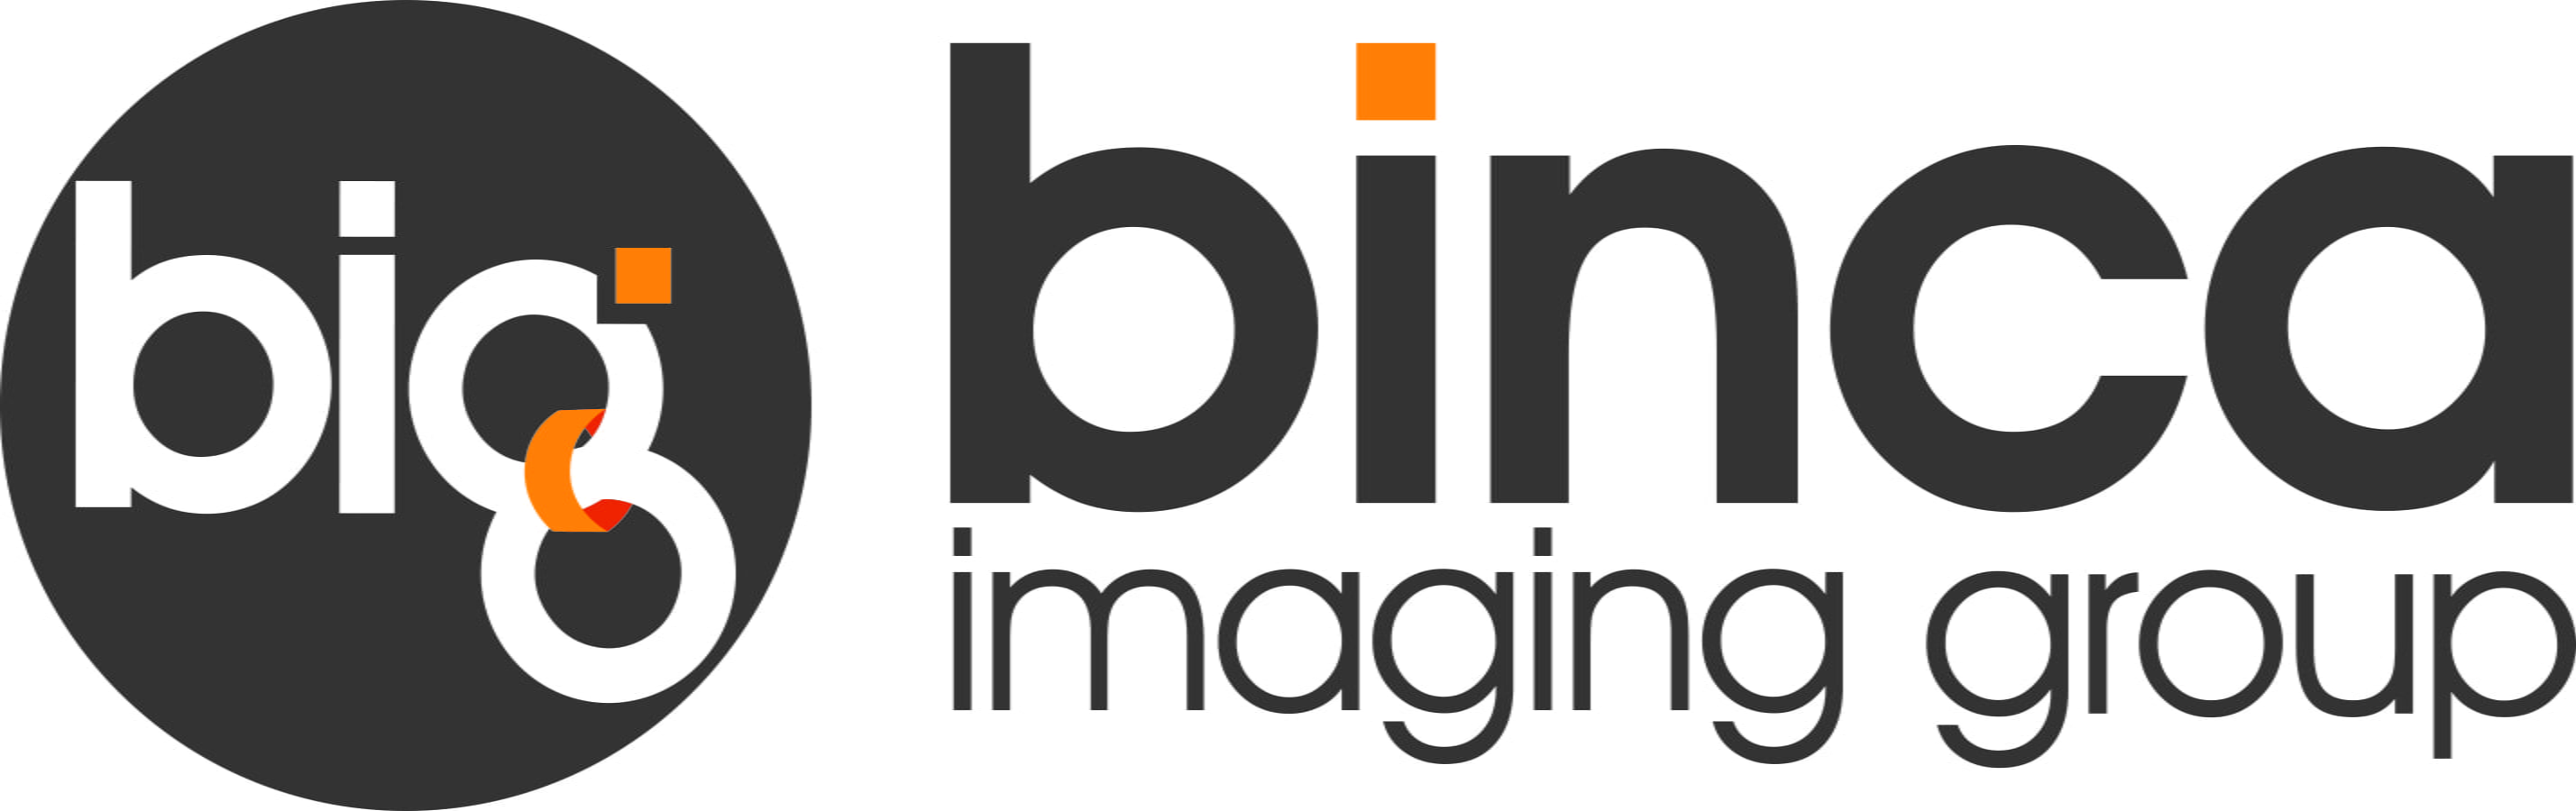 binca_imaging_group_114x50